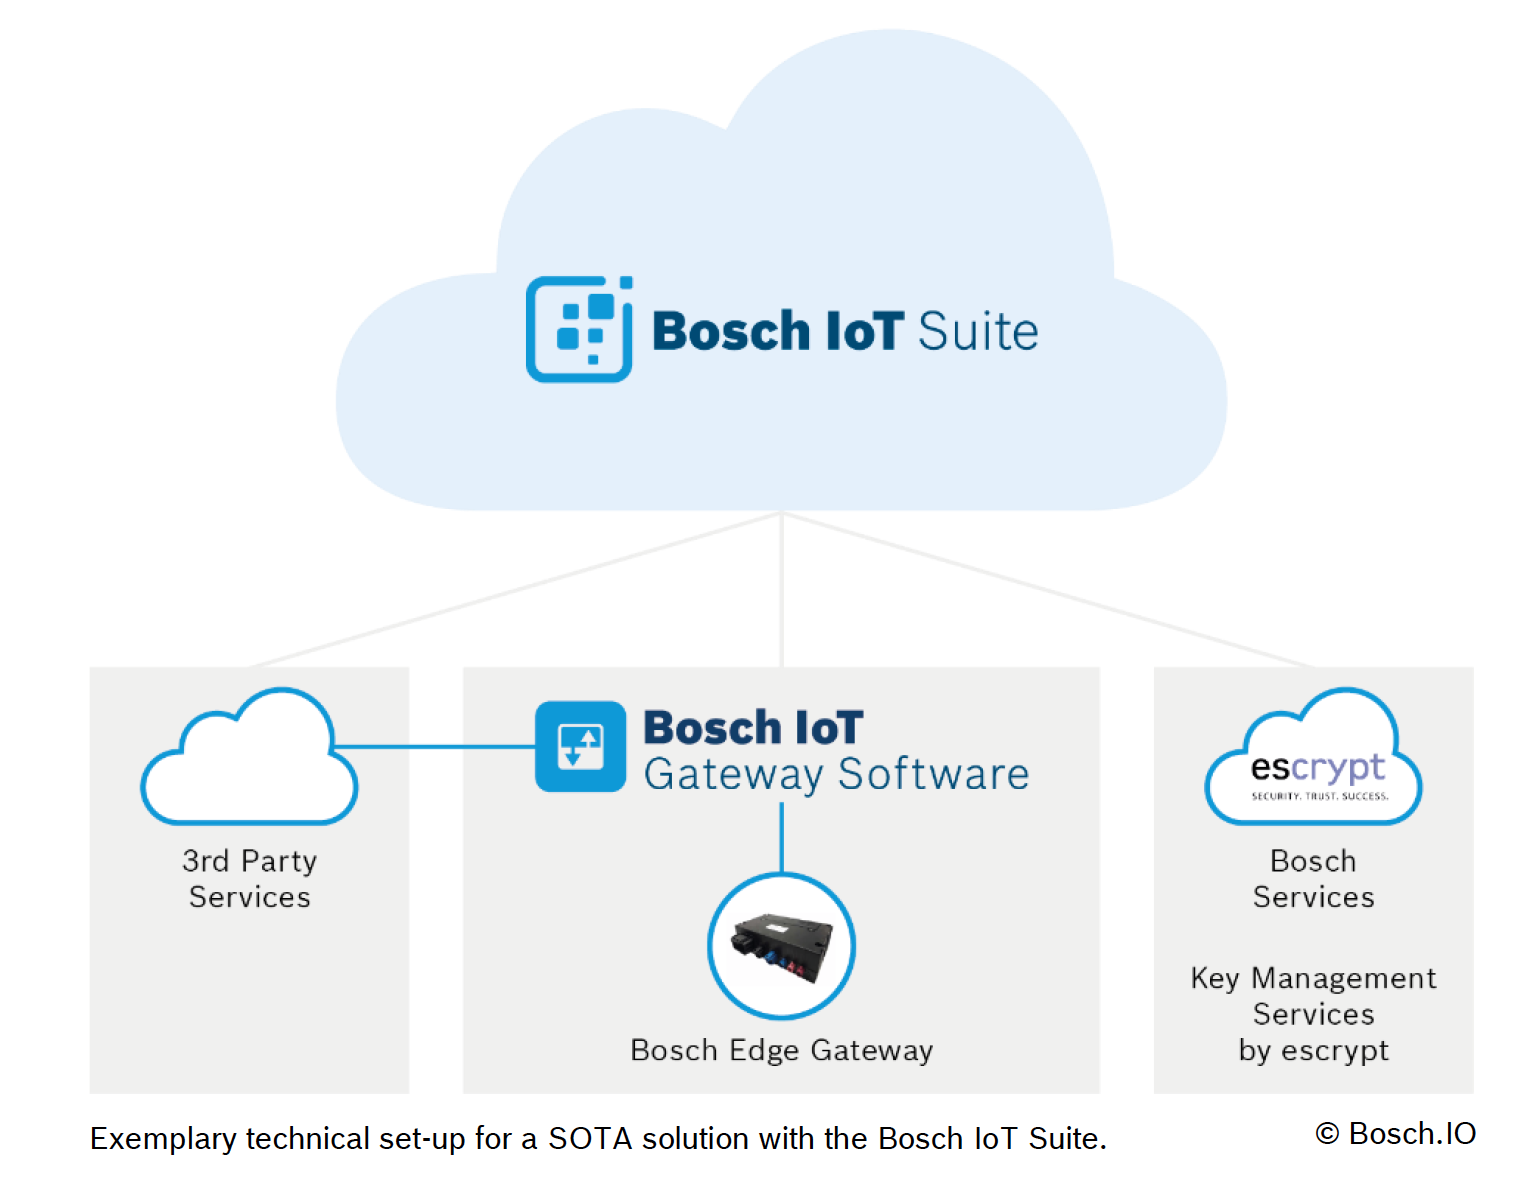 Exemplary technical set-up for a SOTA solution with the Bosch IoT Suite.